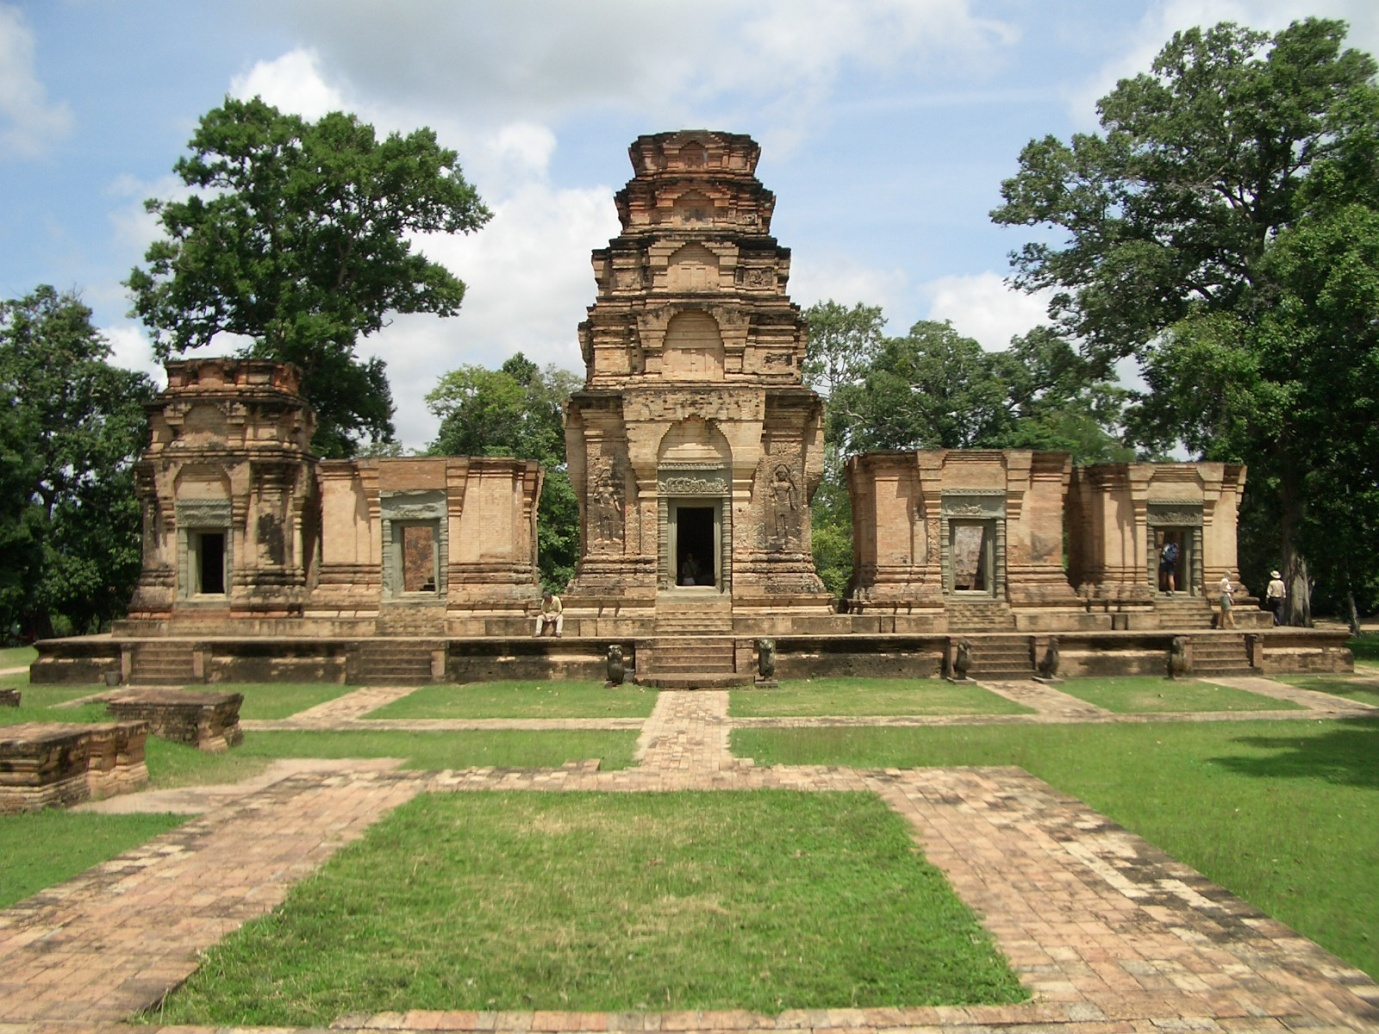 Visit the Angkor Temples